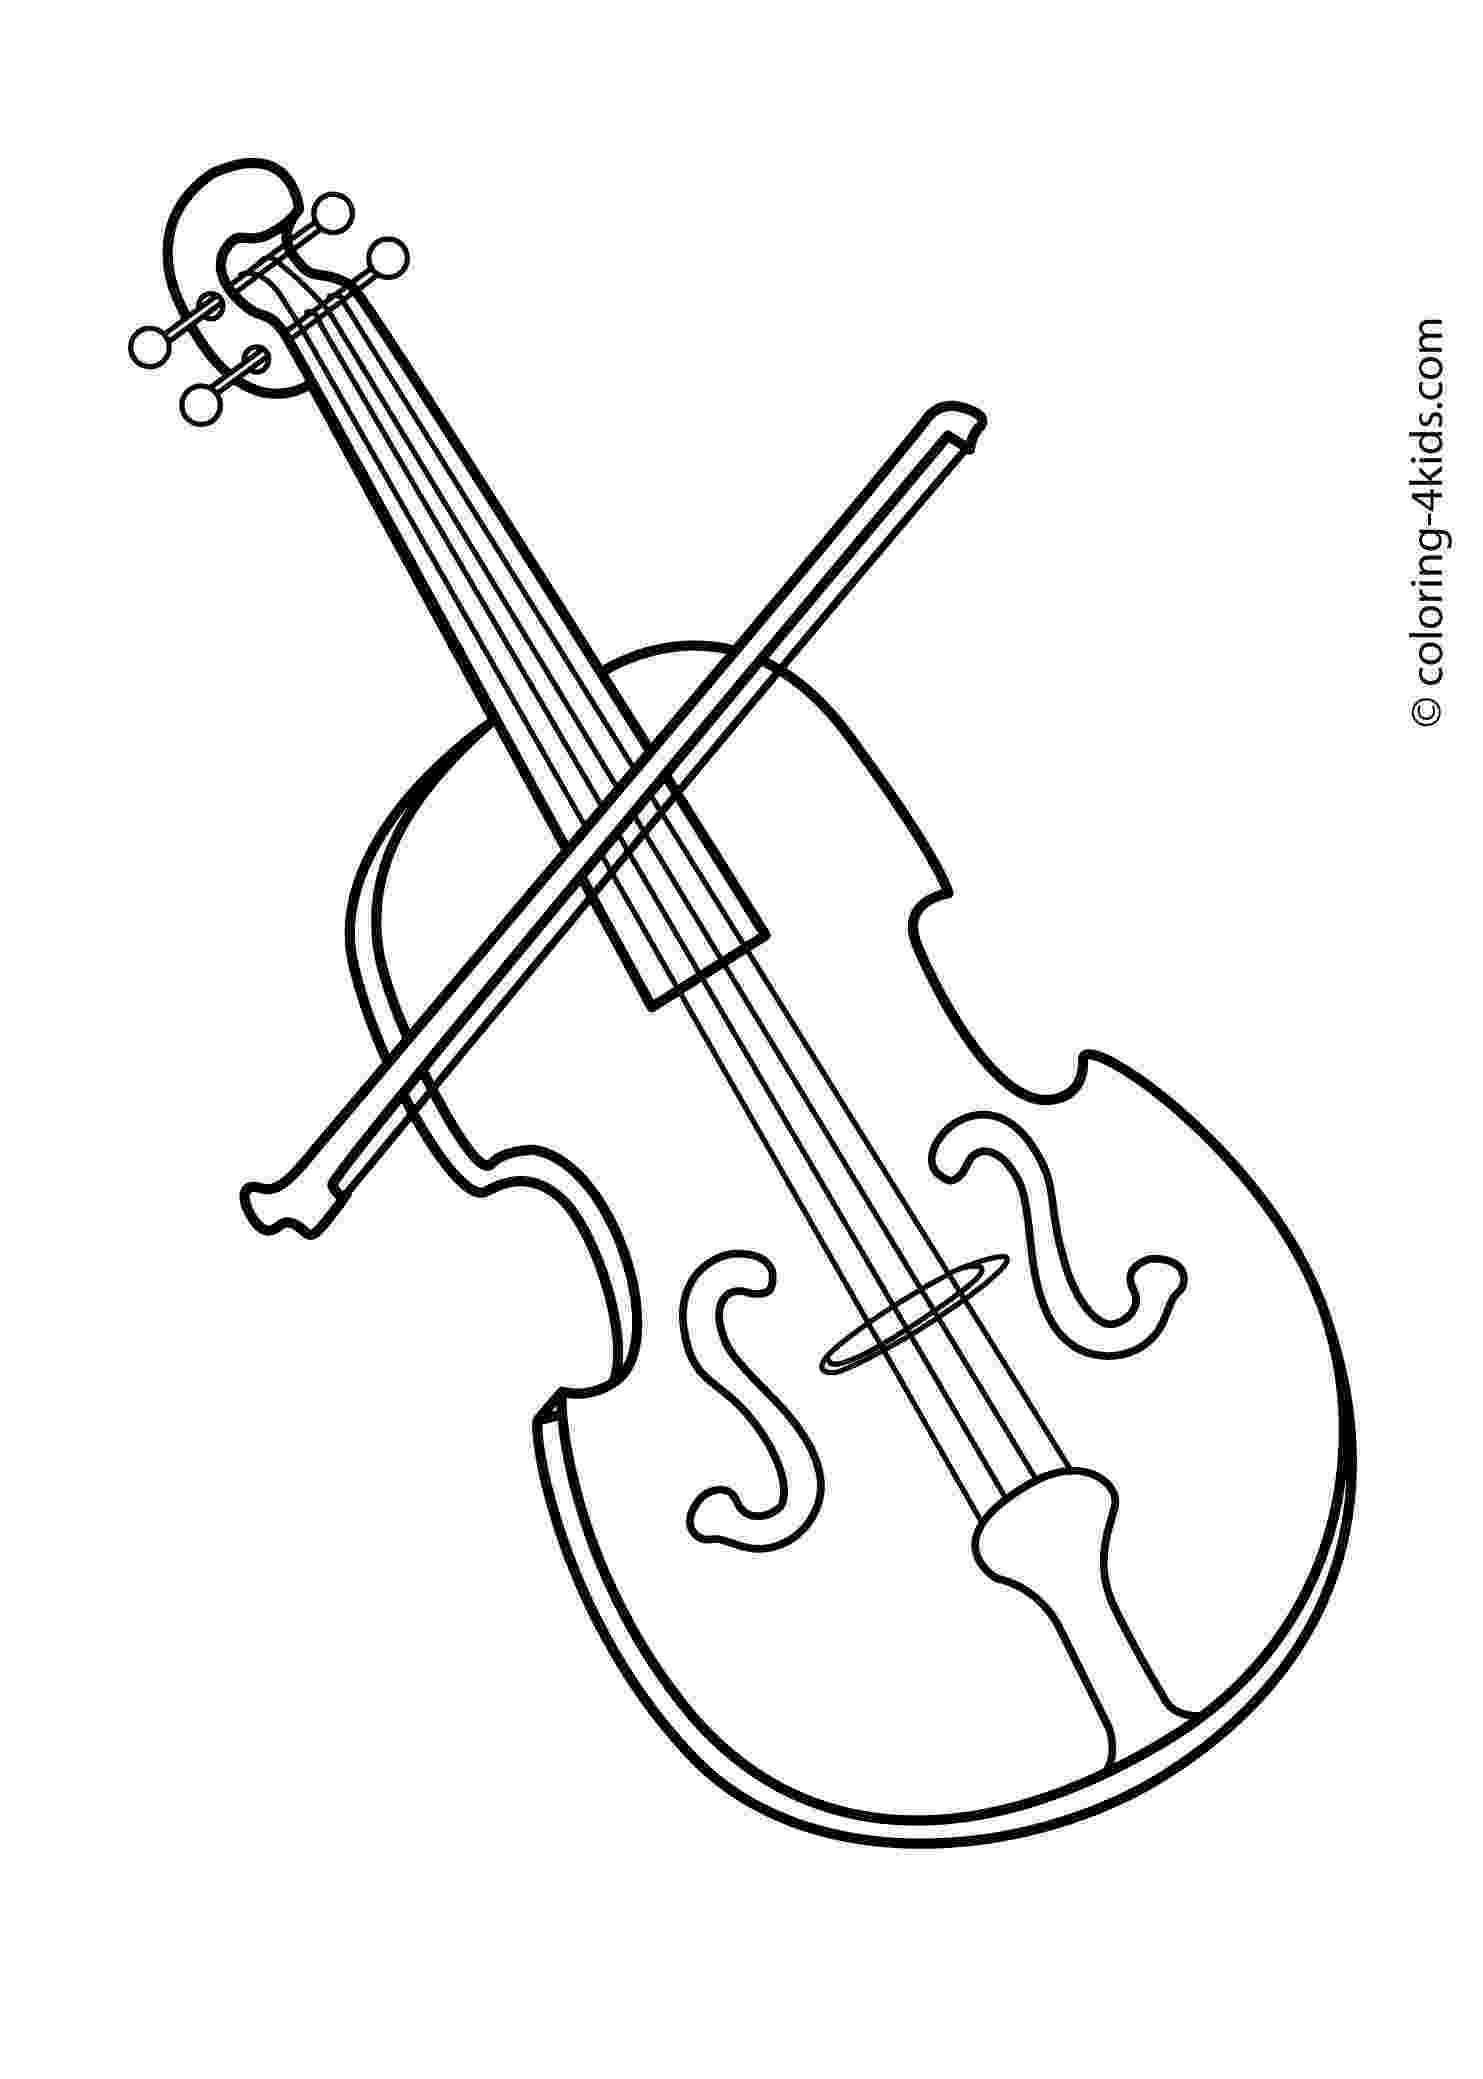 printable musical instruments musical instruments coloring sheet the string family musical instruments printable